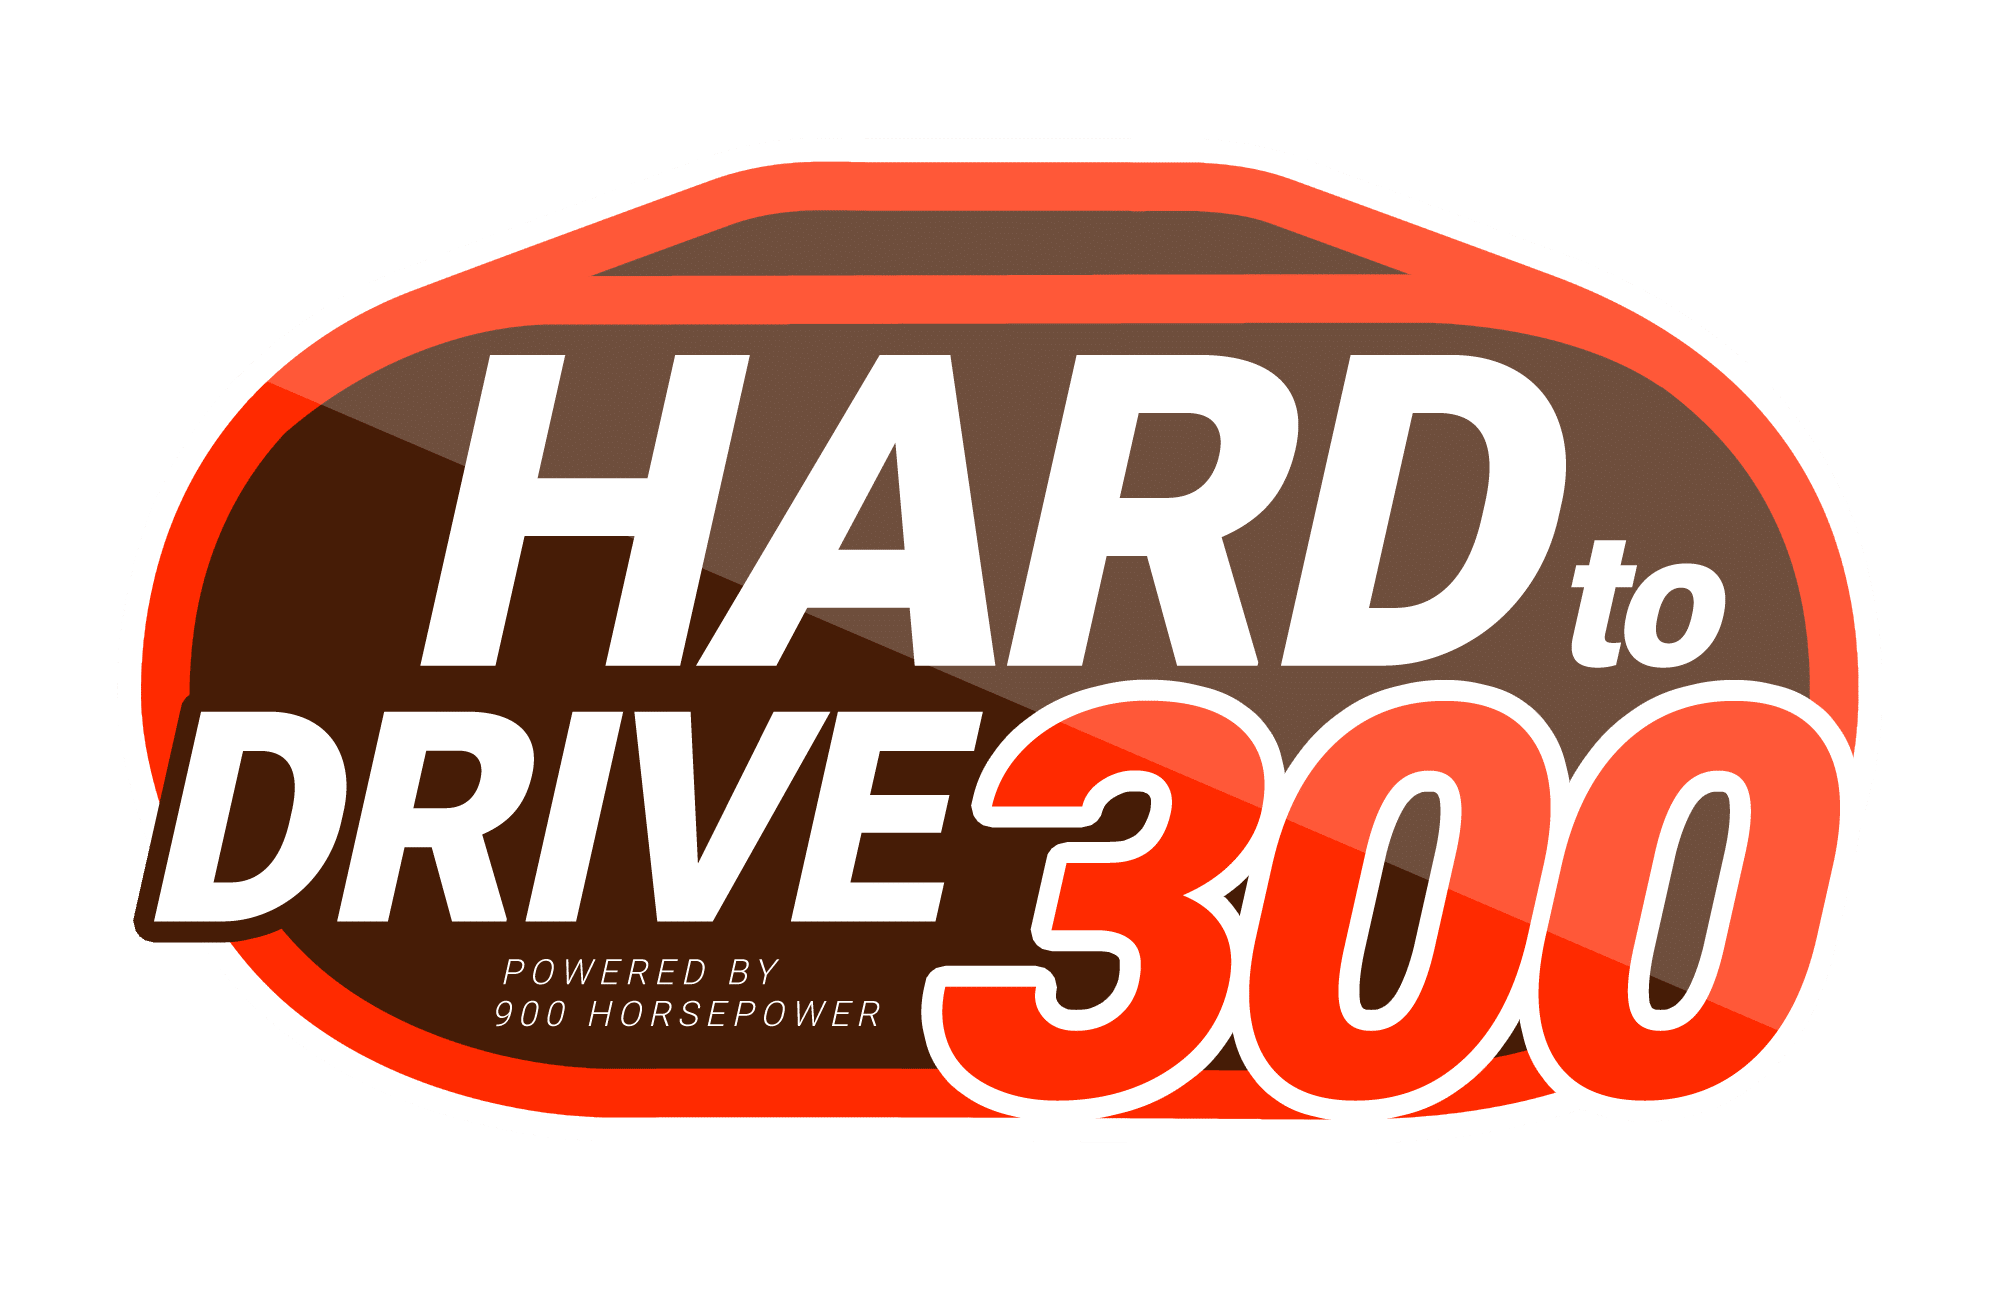 Hard to Drive 300 presented by eRacr.gg